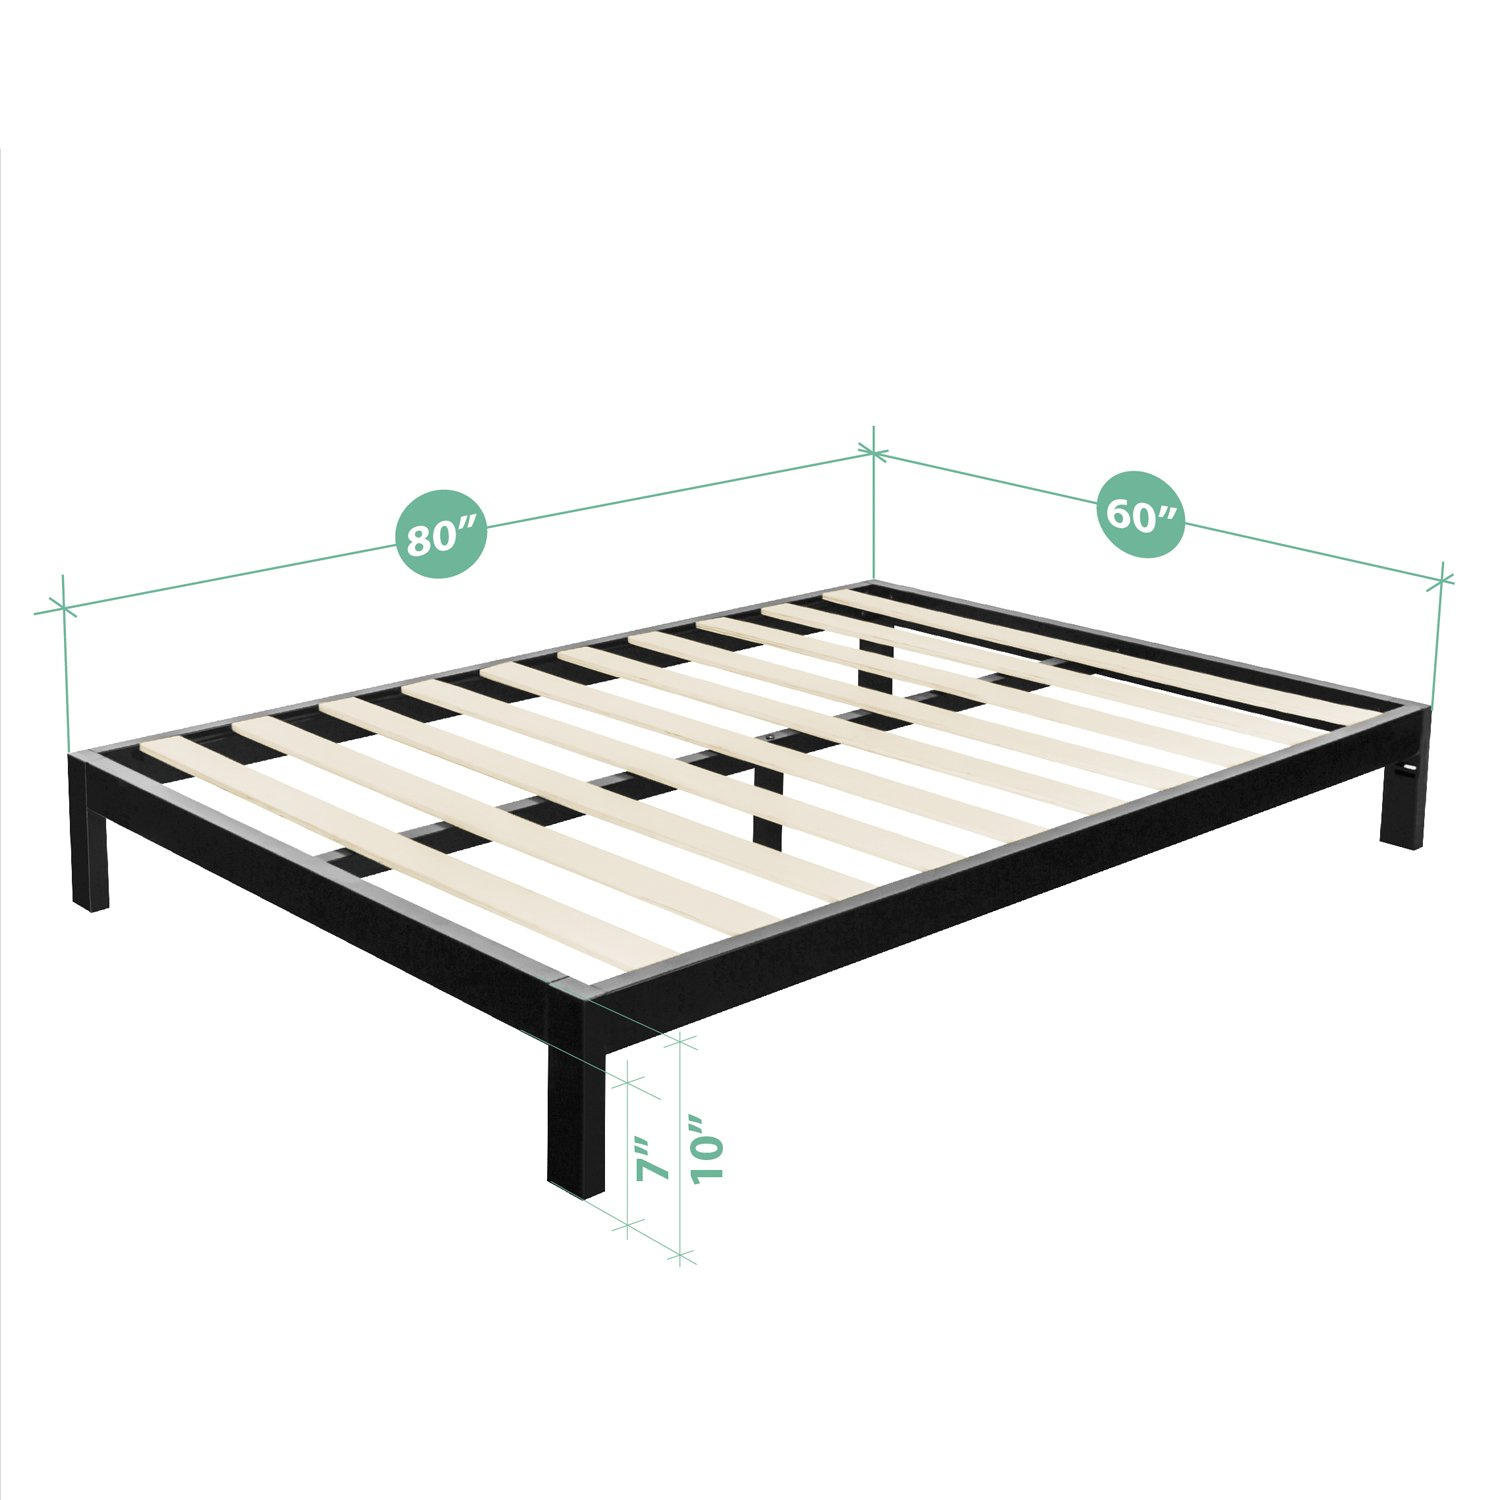 foundation overstock footboard platform leg shipping full mattress stable headboard box bed vecelo and free spring replacement with metal queen size frame garden product today twin home